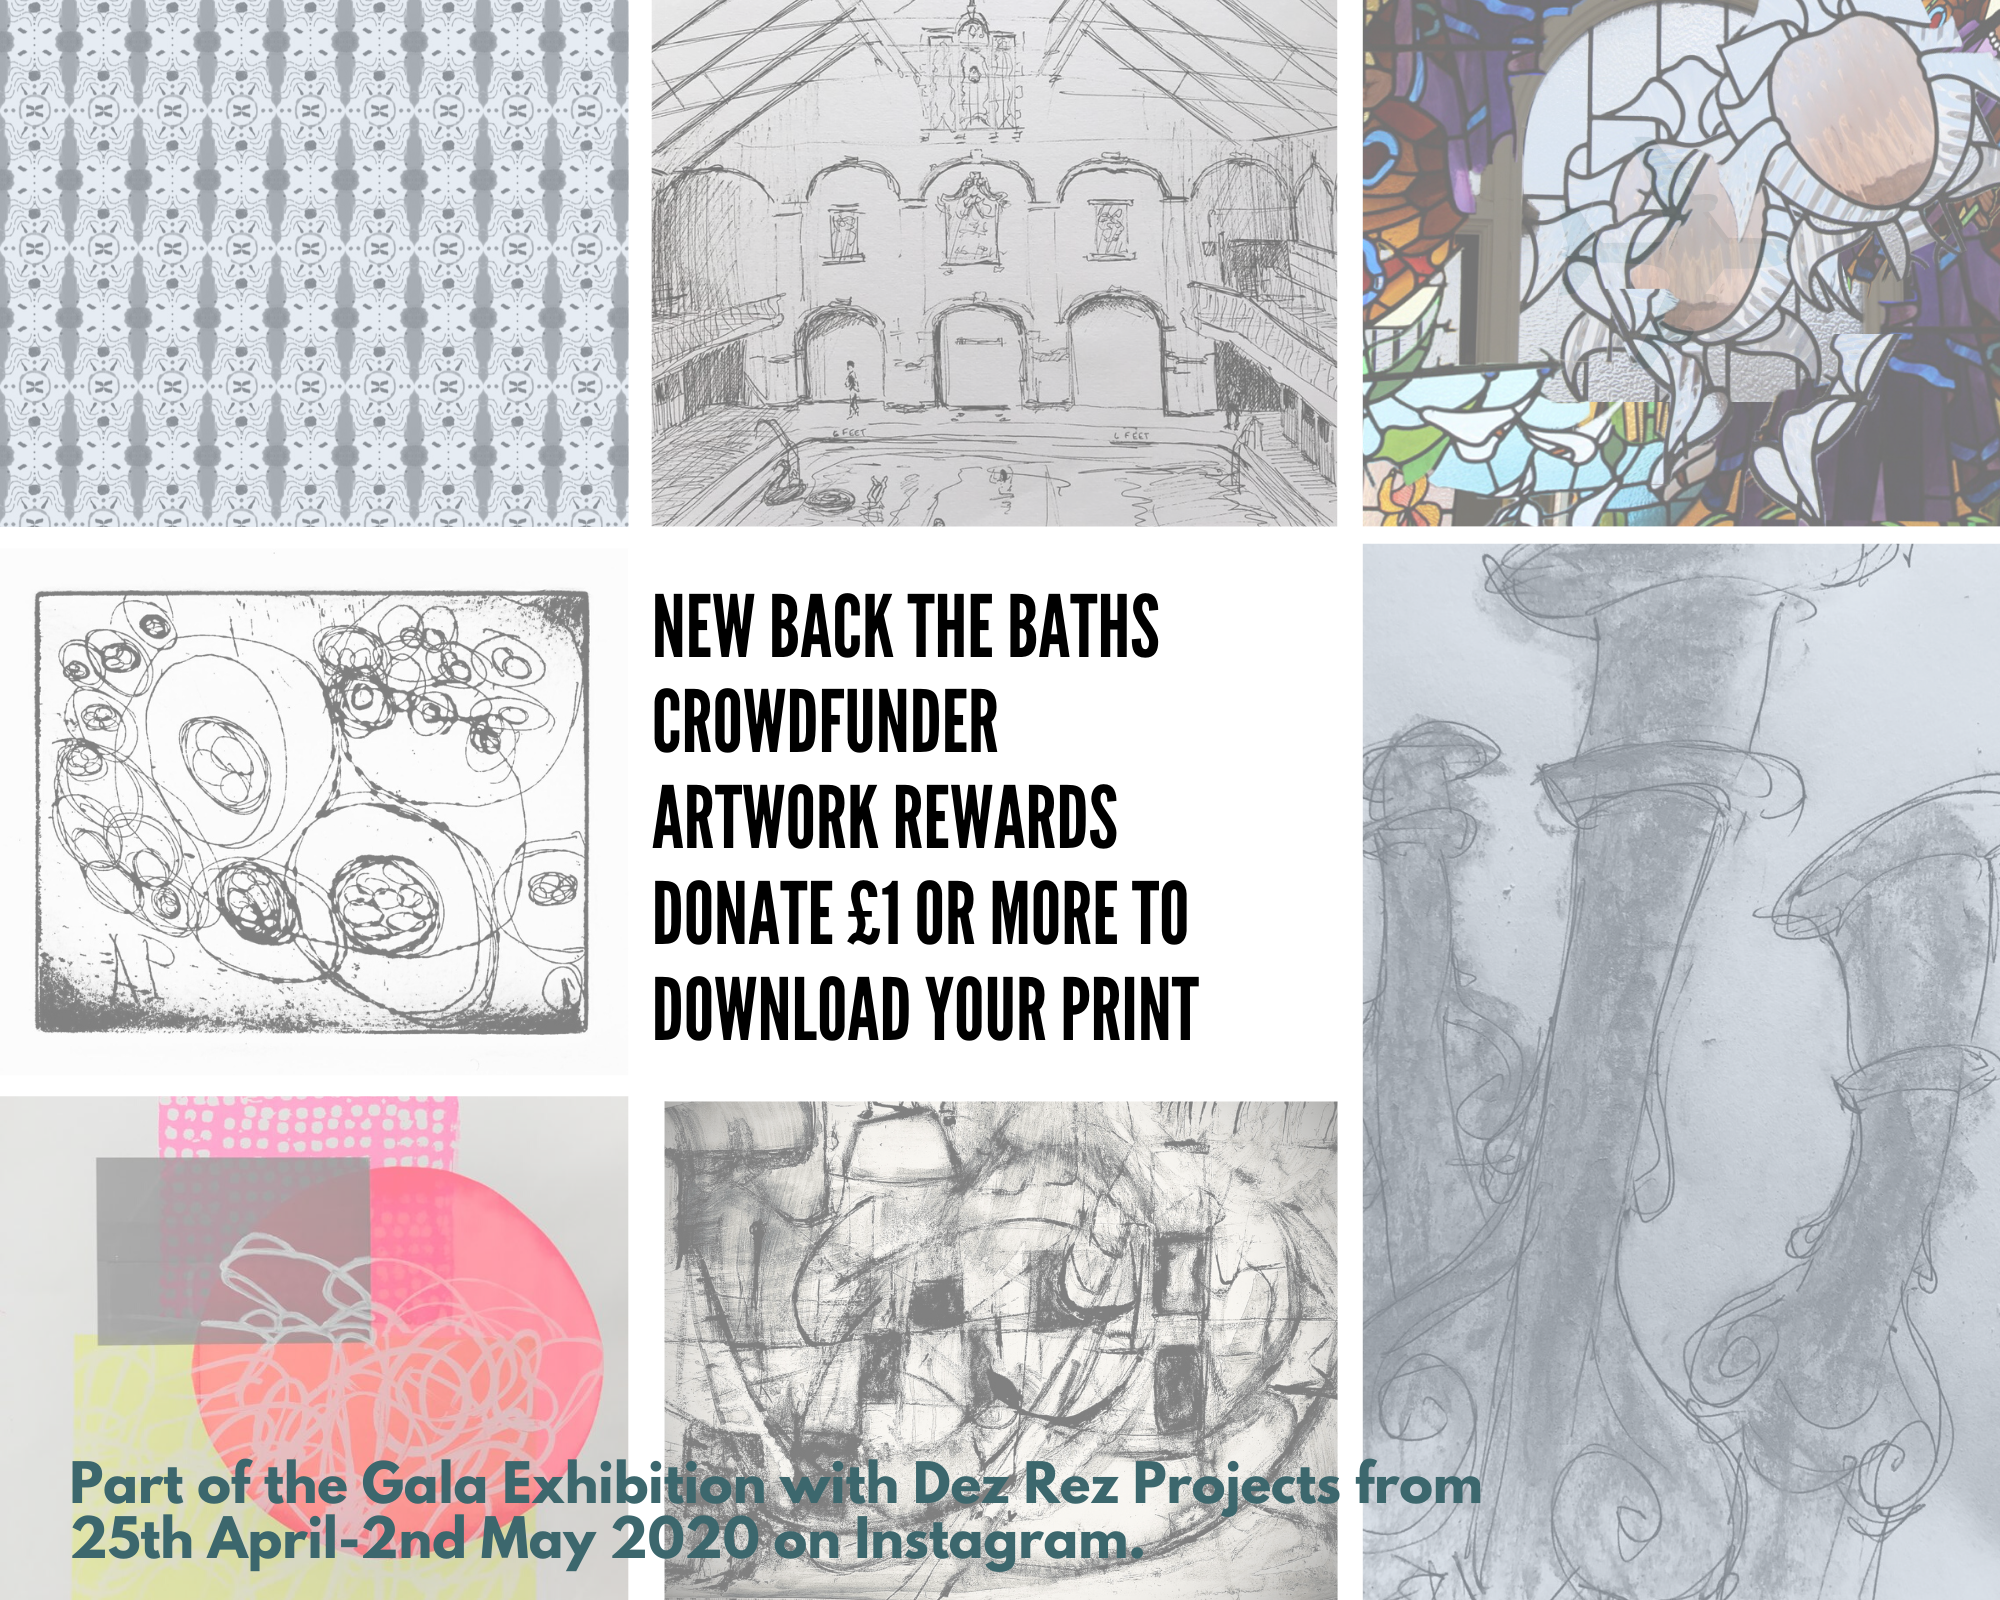 Back the Baths Crowdfunder rewards donated by the artists.